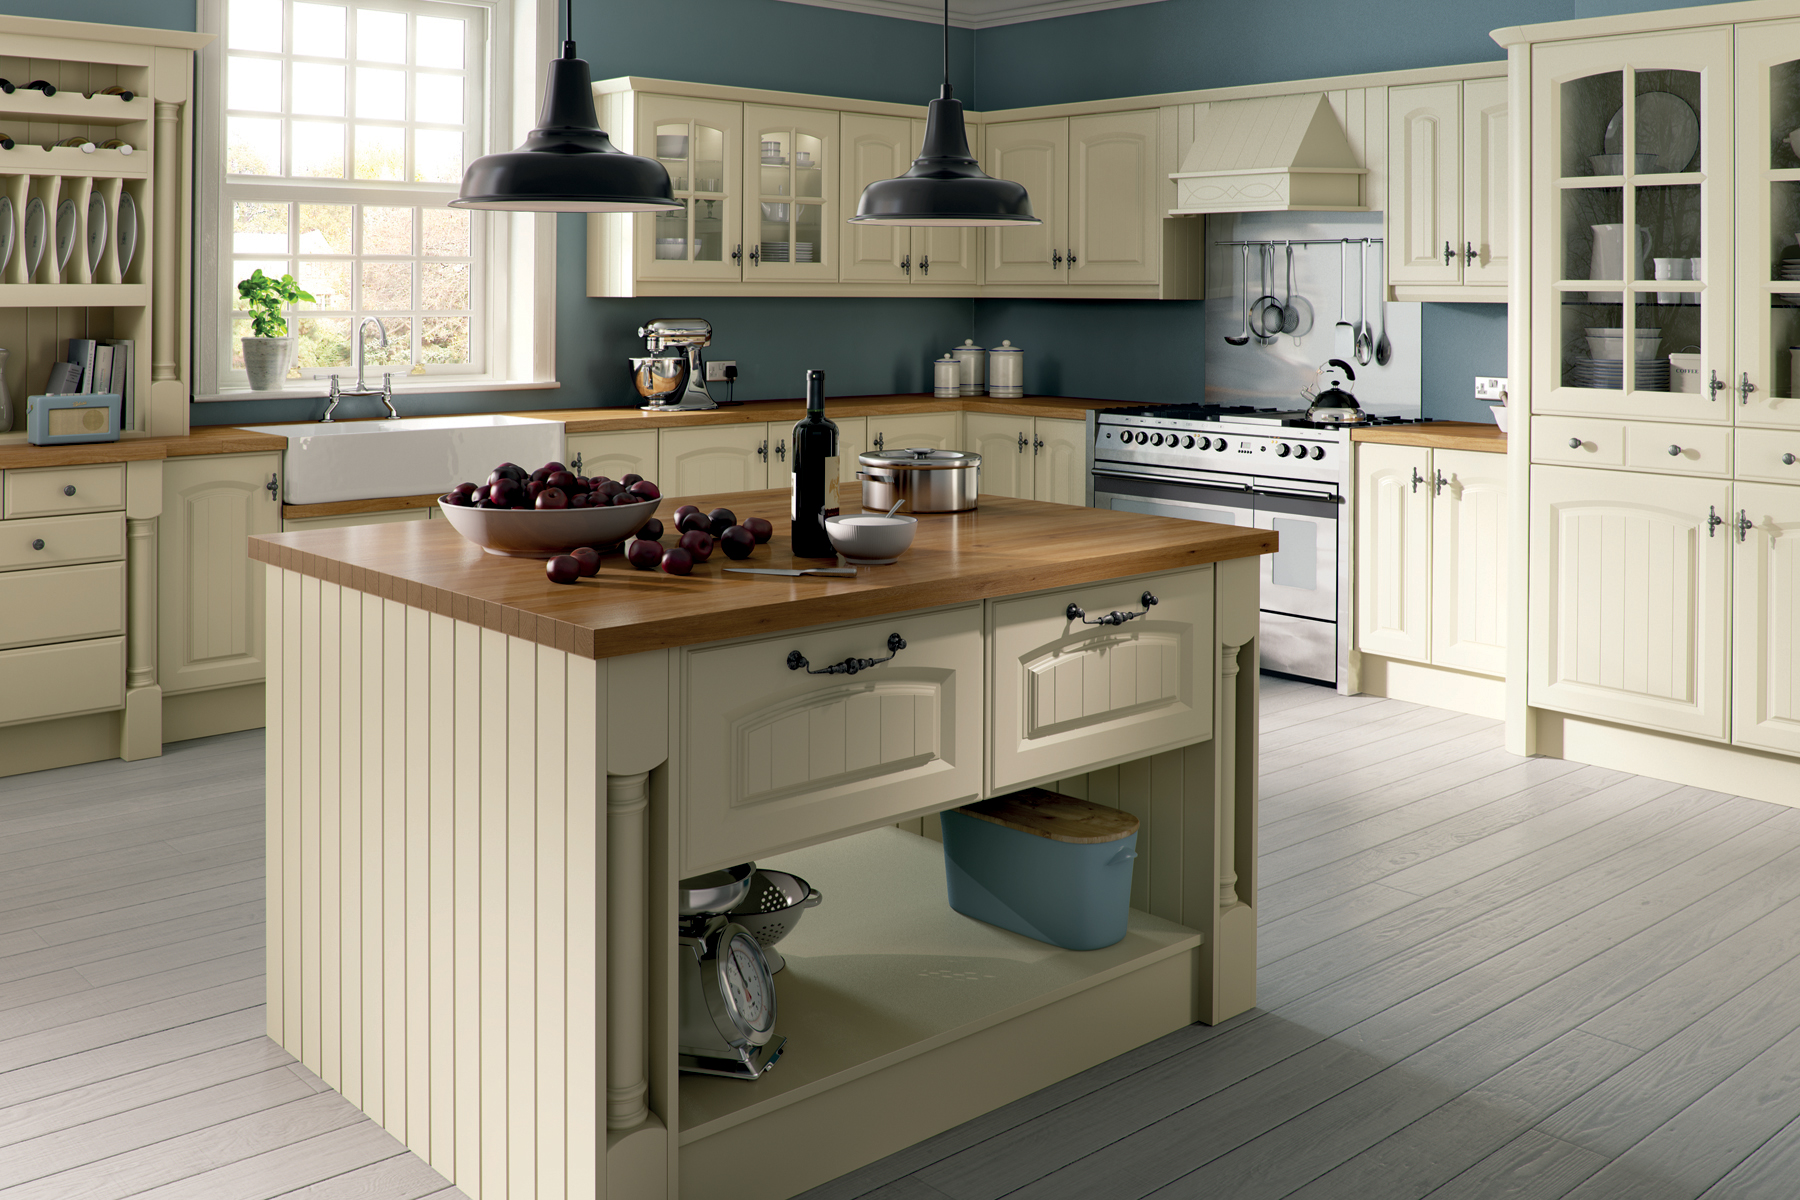 Tongue and groove kitchen cabinets - 1200 614c30 His Farmhouse Kitchen Is Styled With An Elegant Arched Tongue Grooved Picture